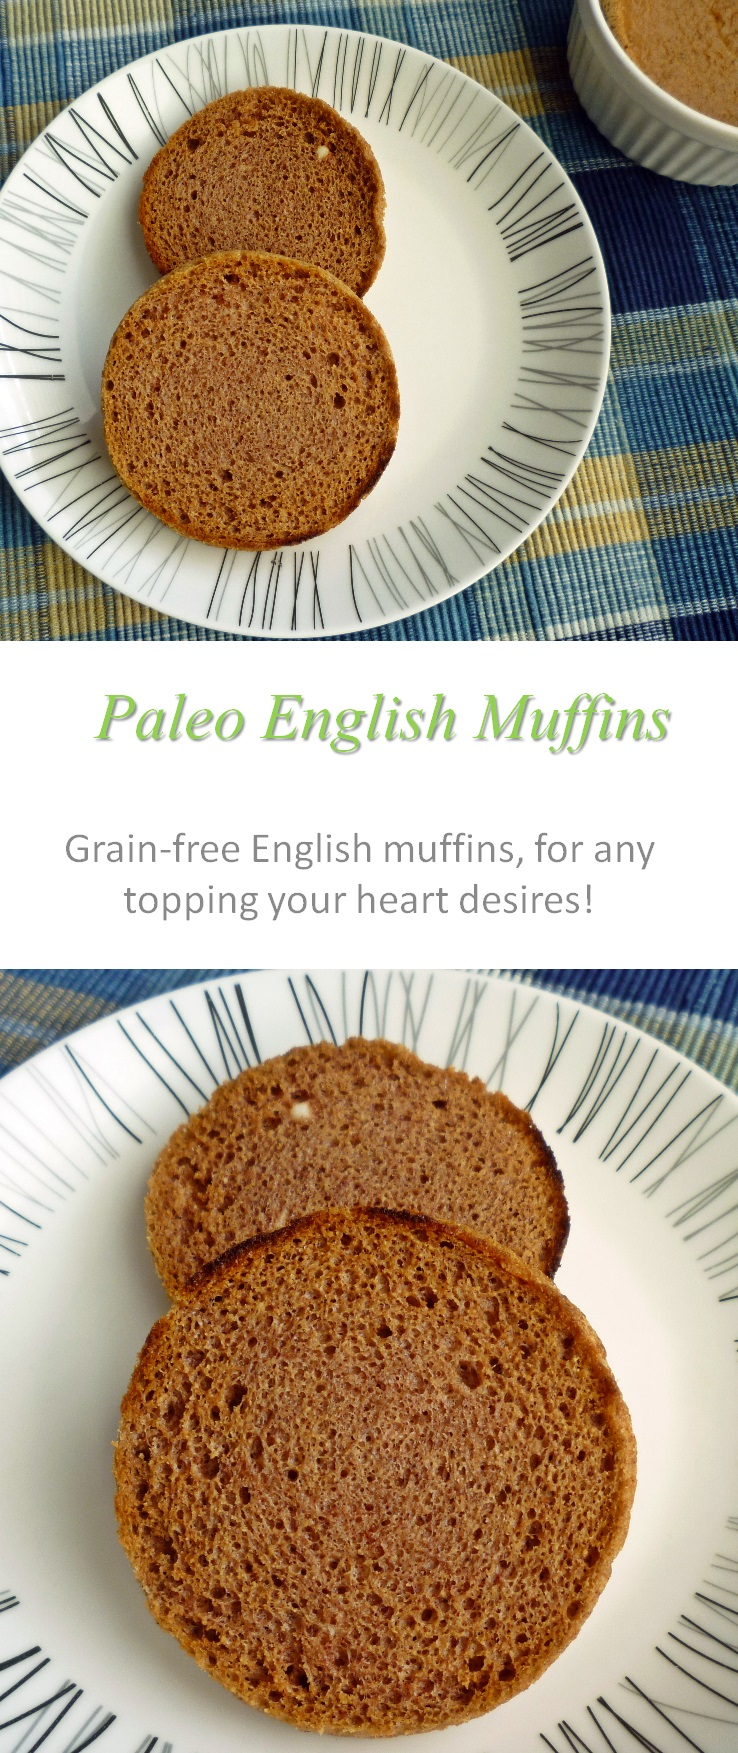 An awesome replacement for the commercial English muffins - made Paleo-friendly, gluten and dairy-free - for all your favorite toppings! #Englishmuffin